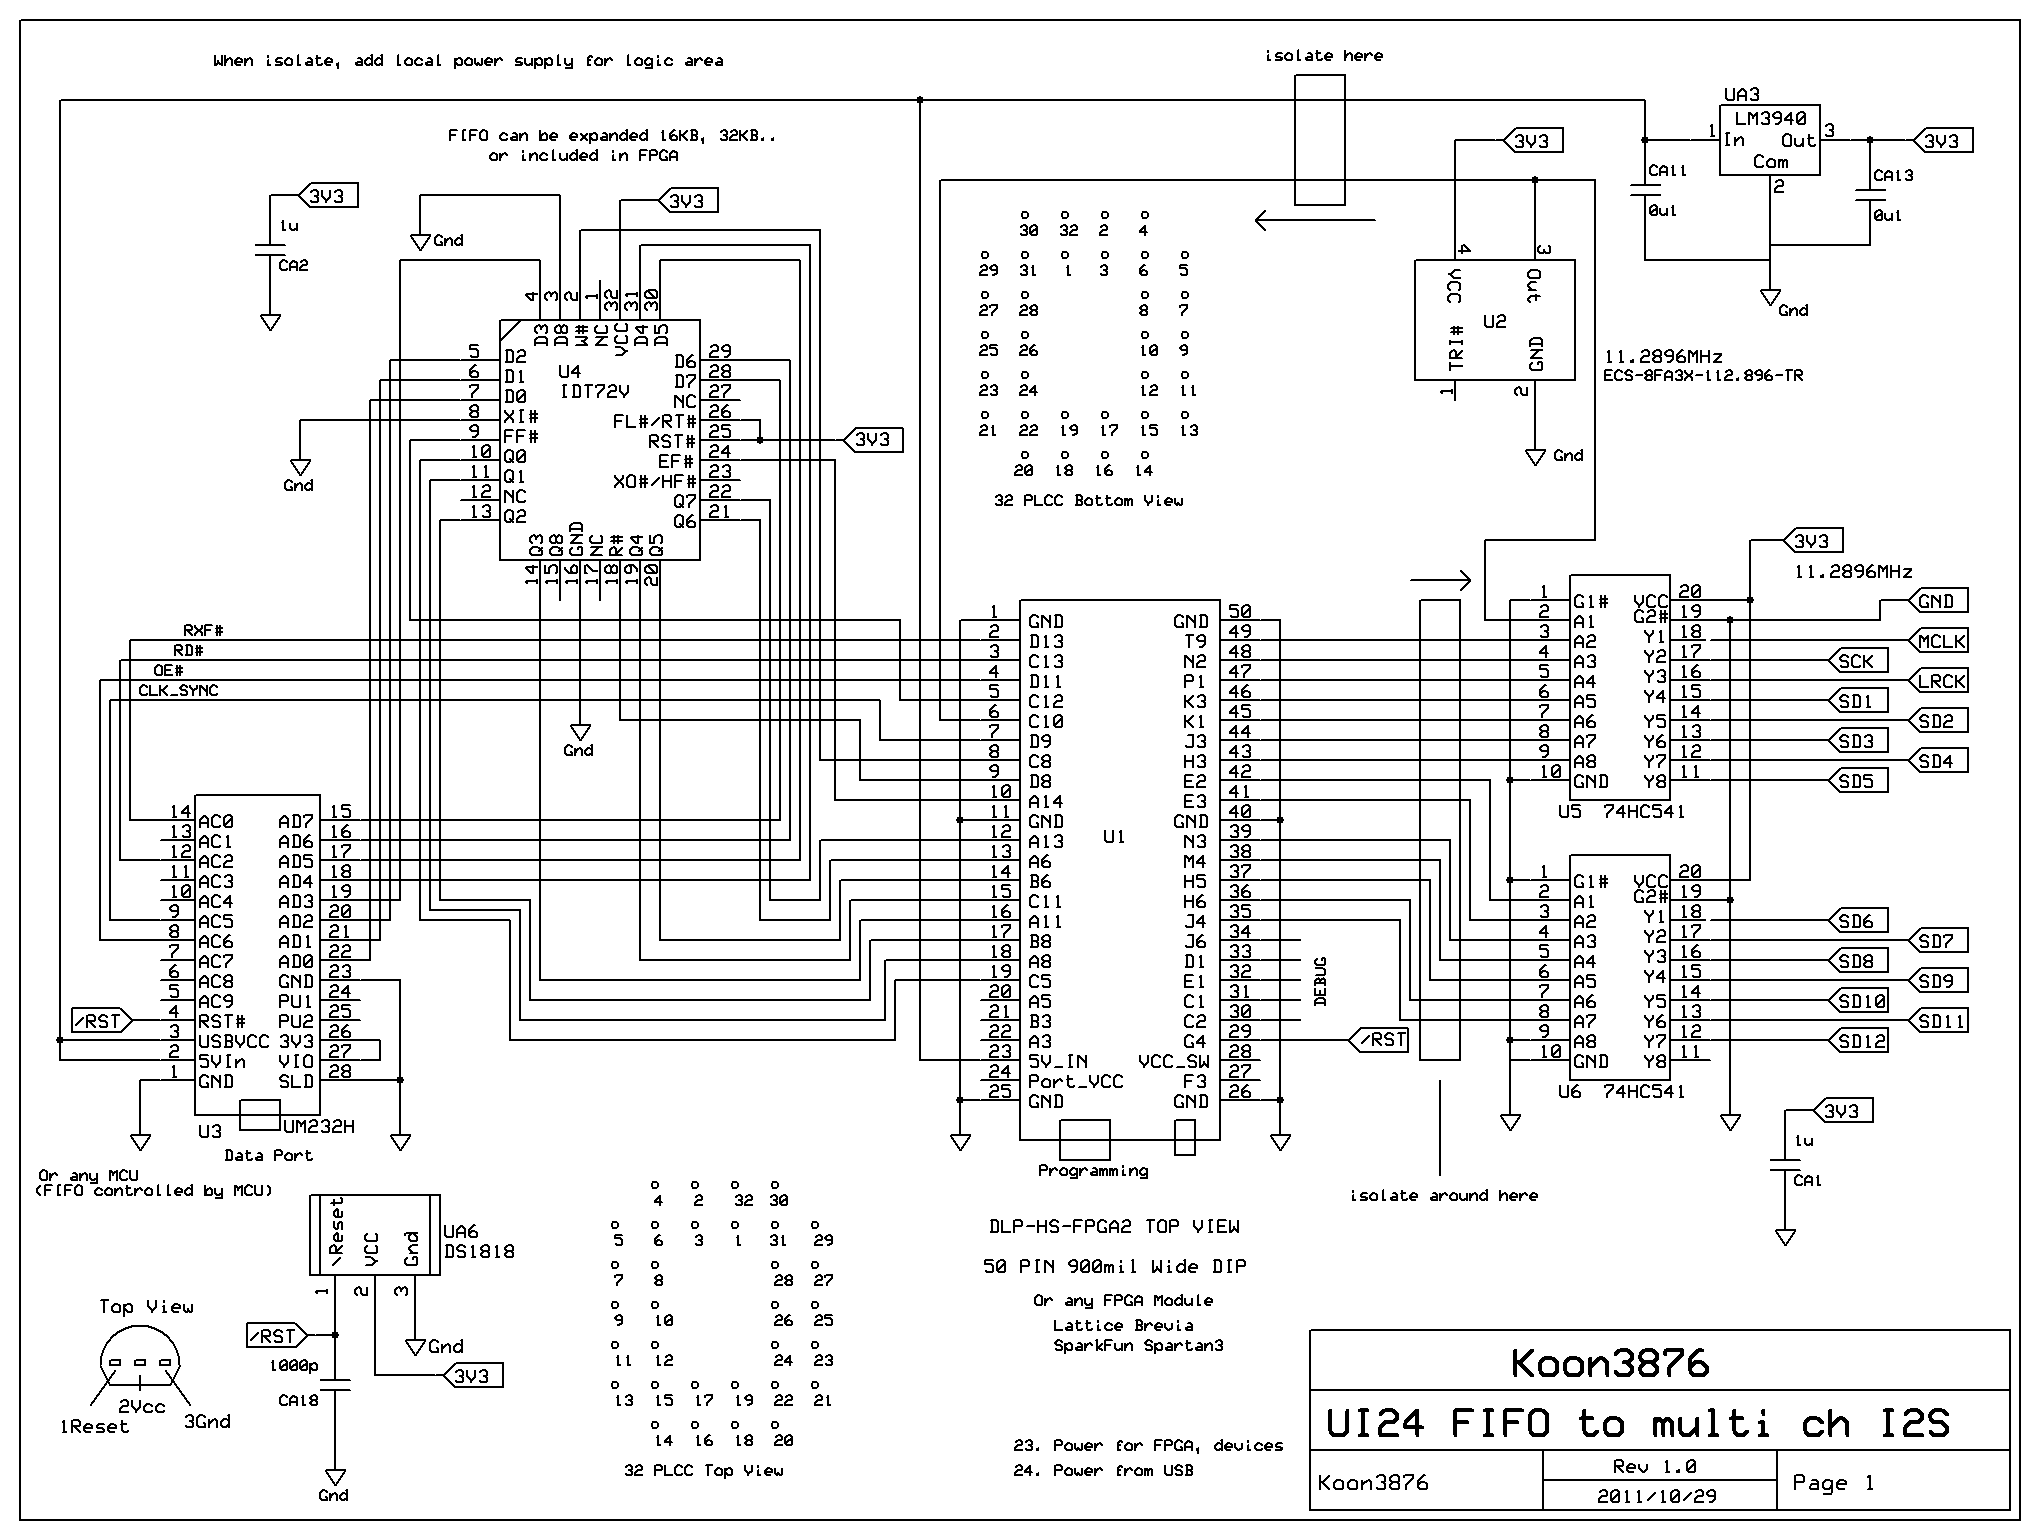 usb 2 0 schematic online wiring diagramusb to multi channel i2s usb2 0 24channels koonaudioprojectsusb 2 0 schematic 17